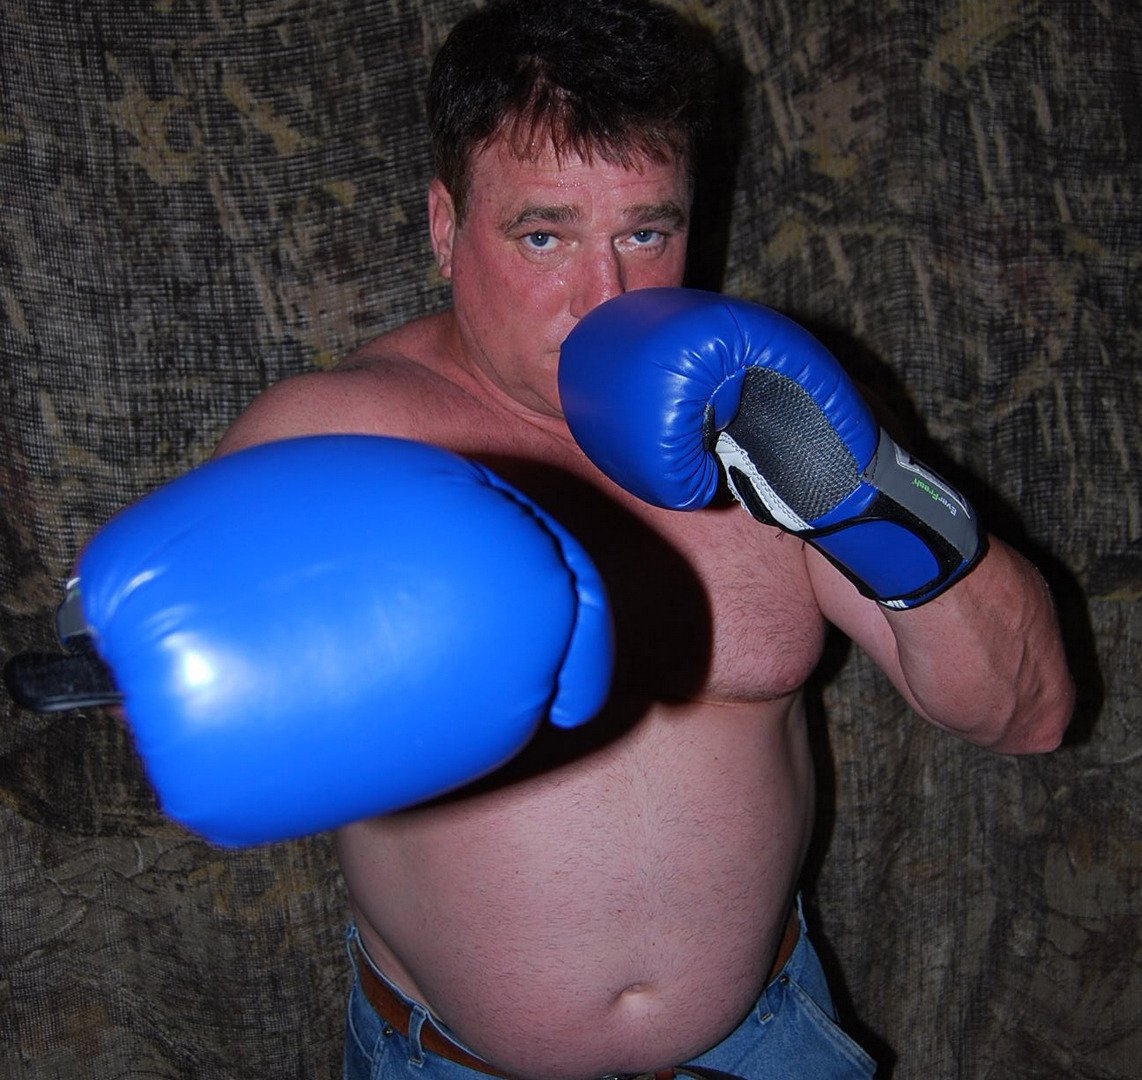 LOOK LIKE THIS COP? get MONTHLY SALARY from  http:// ModelingPortfolio.org  &nbsp;   #cop #police #man #men #officer #fighting #boxing #boxer #husky #brawl<br>http://pic.twitter.com/nPk95ijOlc